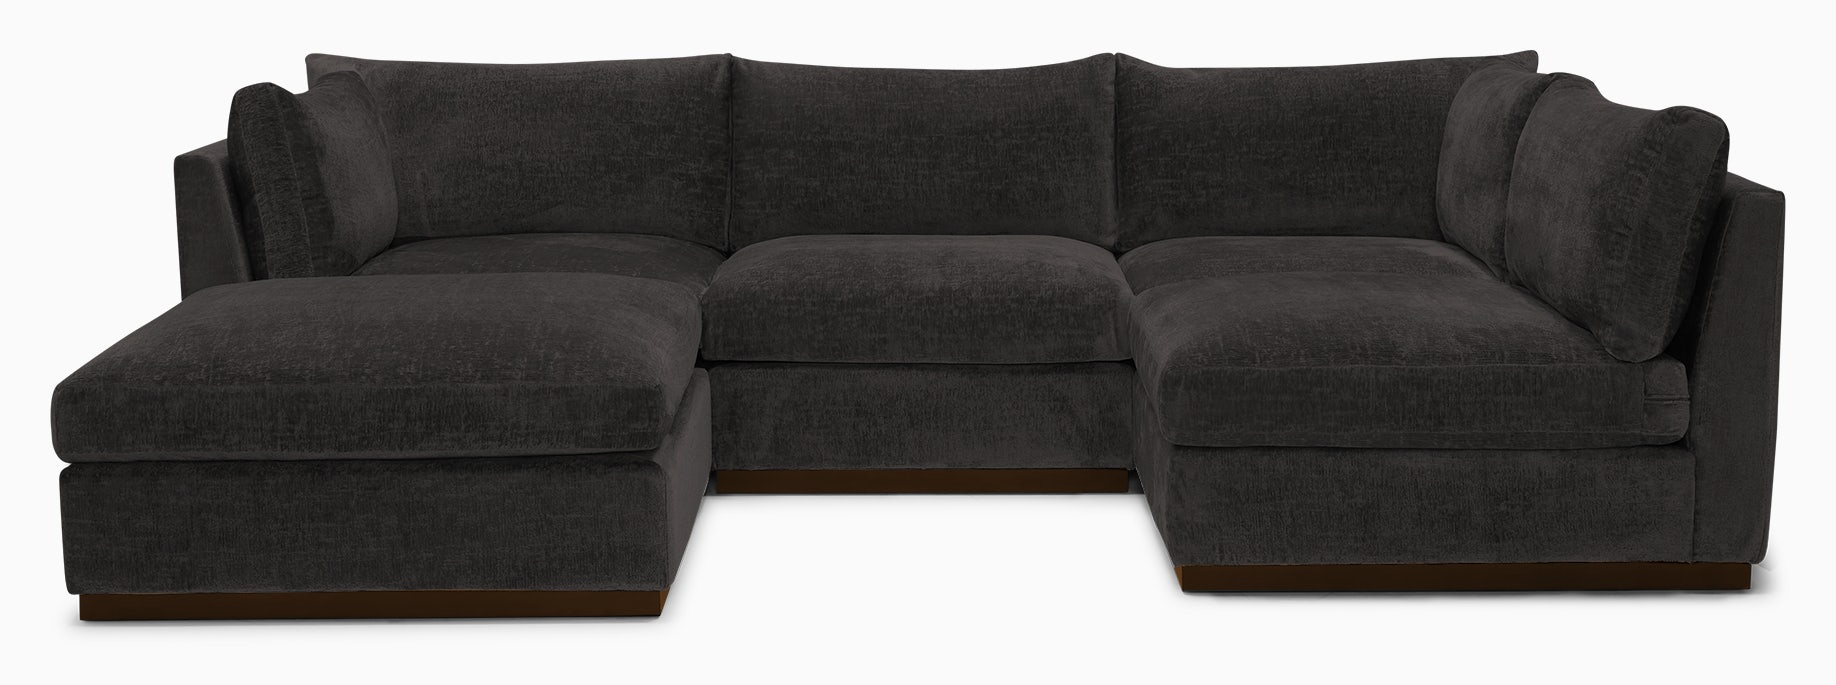 holt armless sofa sectional %285 piece%29 cordova eclipse